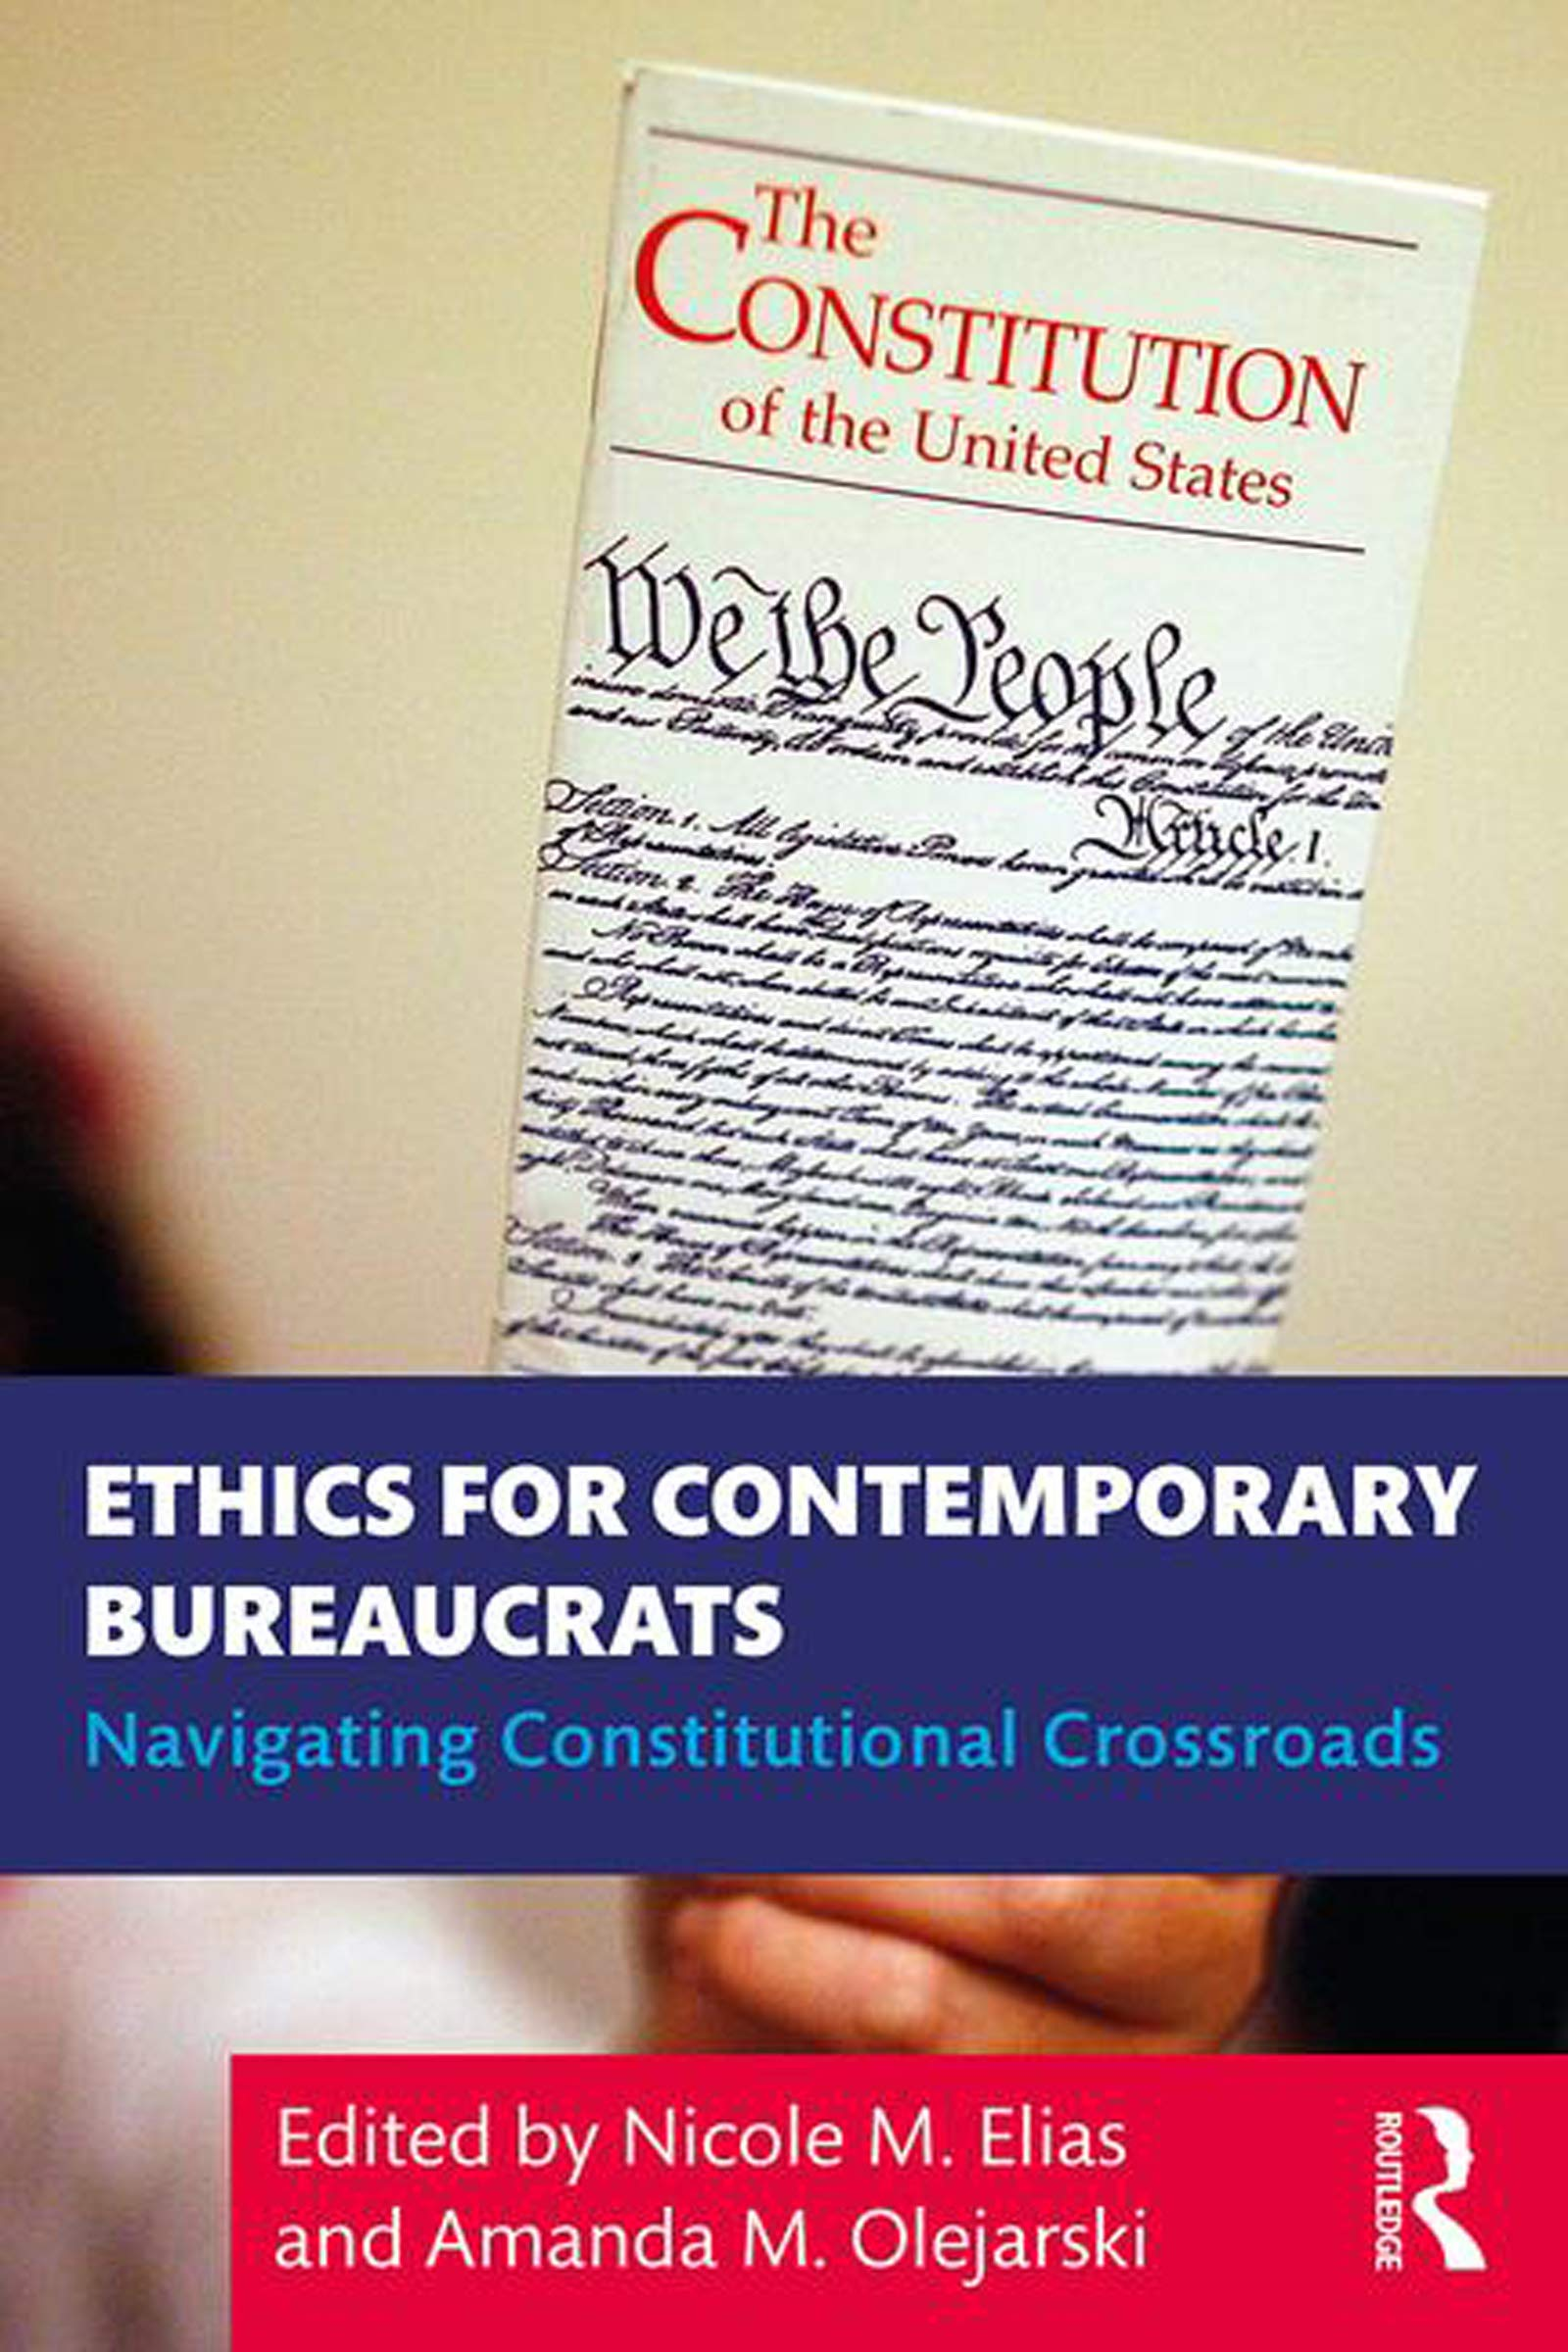 Ethics for Contemporary Bureaucrats: Navigating Constitutional Crossroads